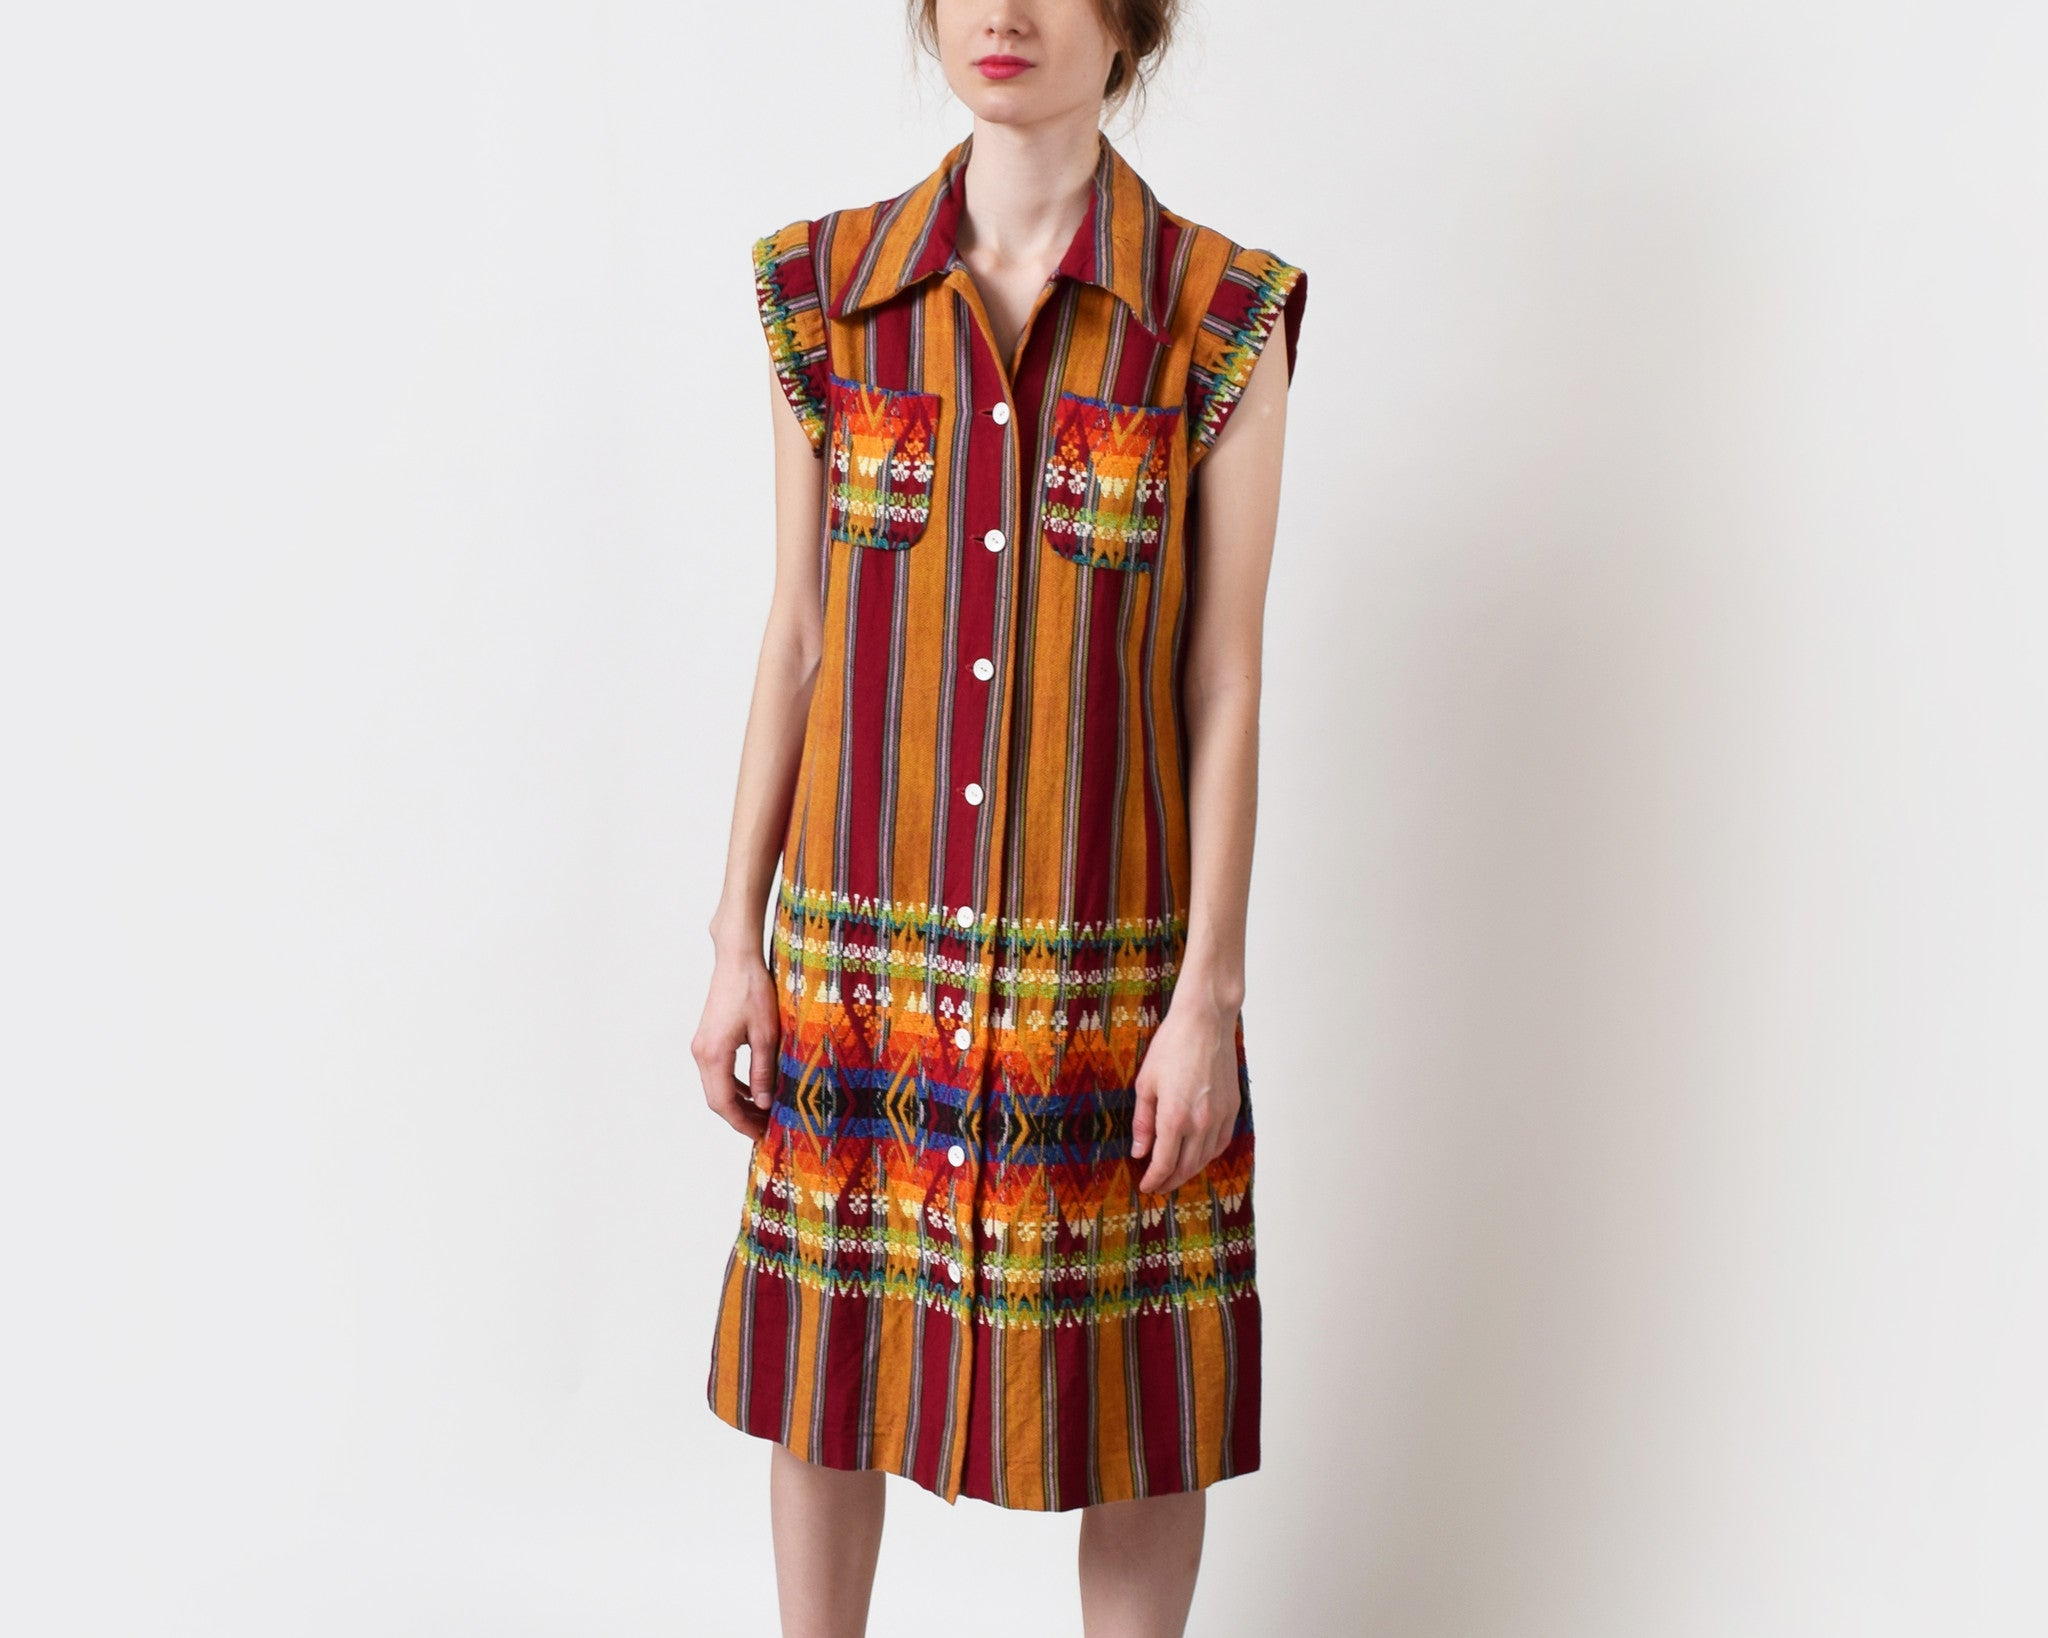 Vintage 1970s Guatemalan Dress